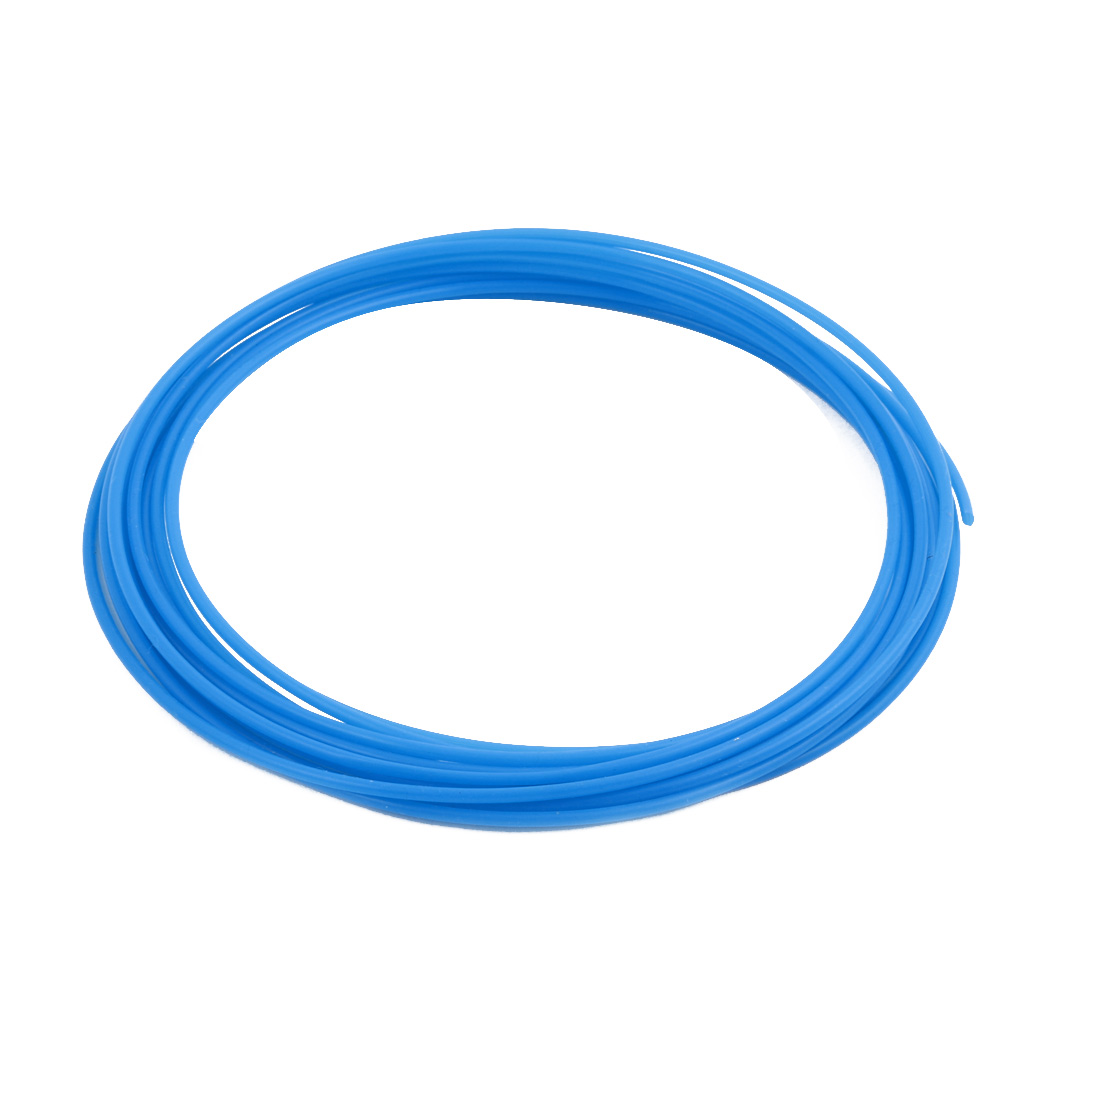 1.93mmx2.33mm PTFE Resistant High Temperature Blue Tubing 5 Meters 16.4Ft